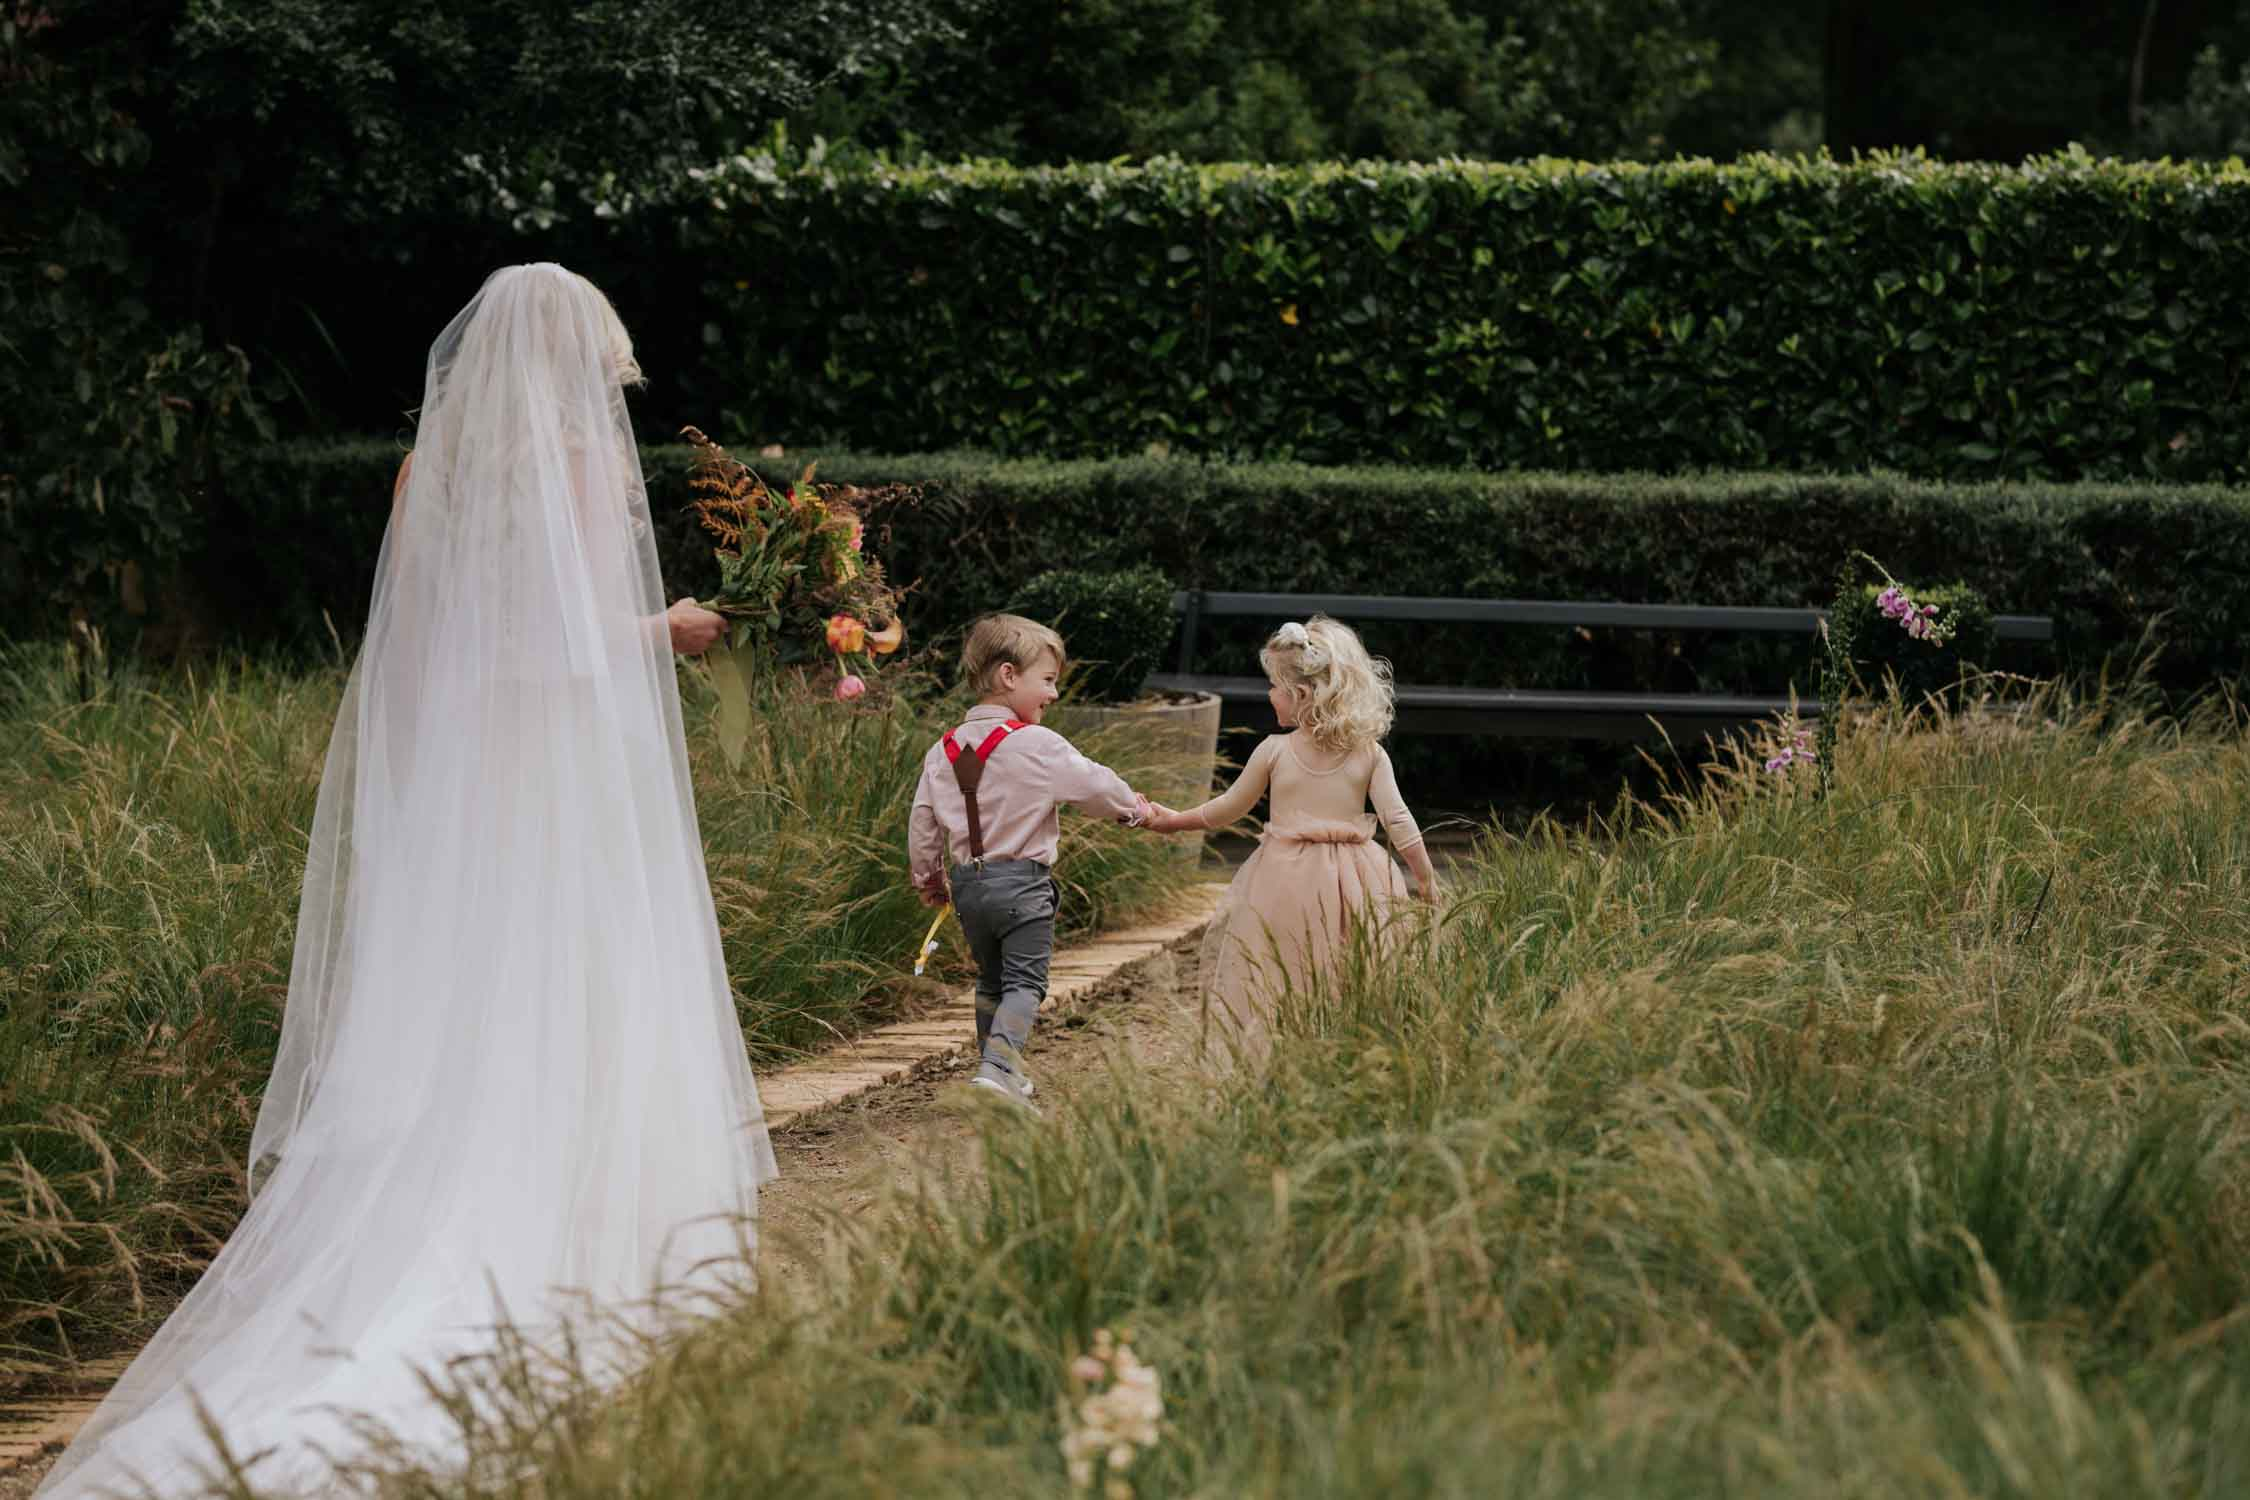 Flower girl wearing pale pink dress and page boy wearing grey and red walk in front of bride down a garden path. Bride is wearing a veil.